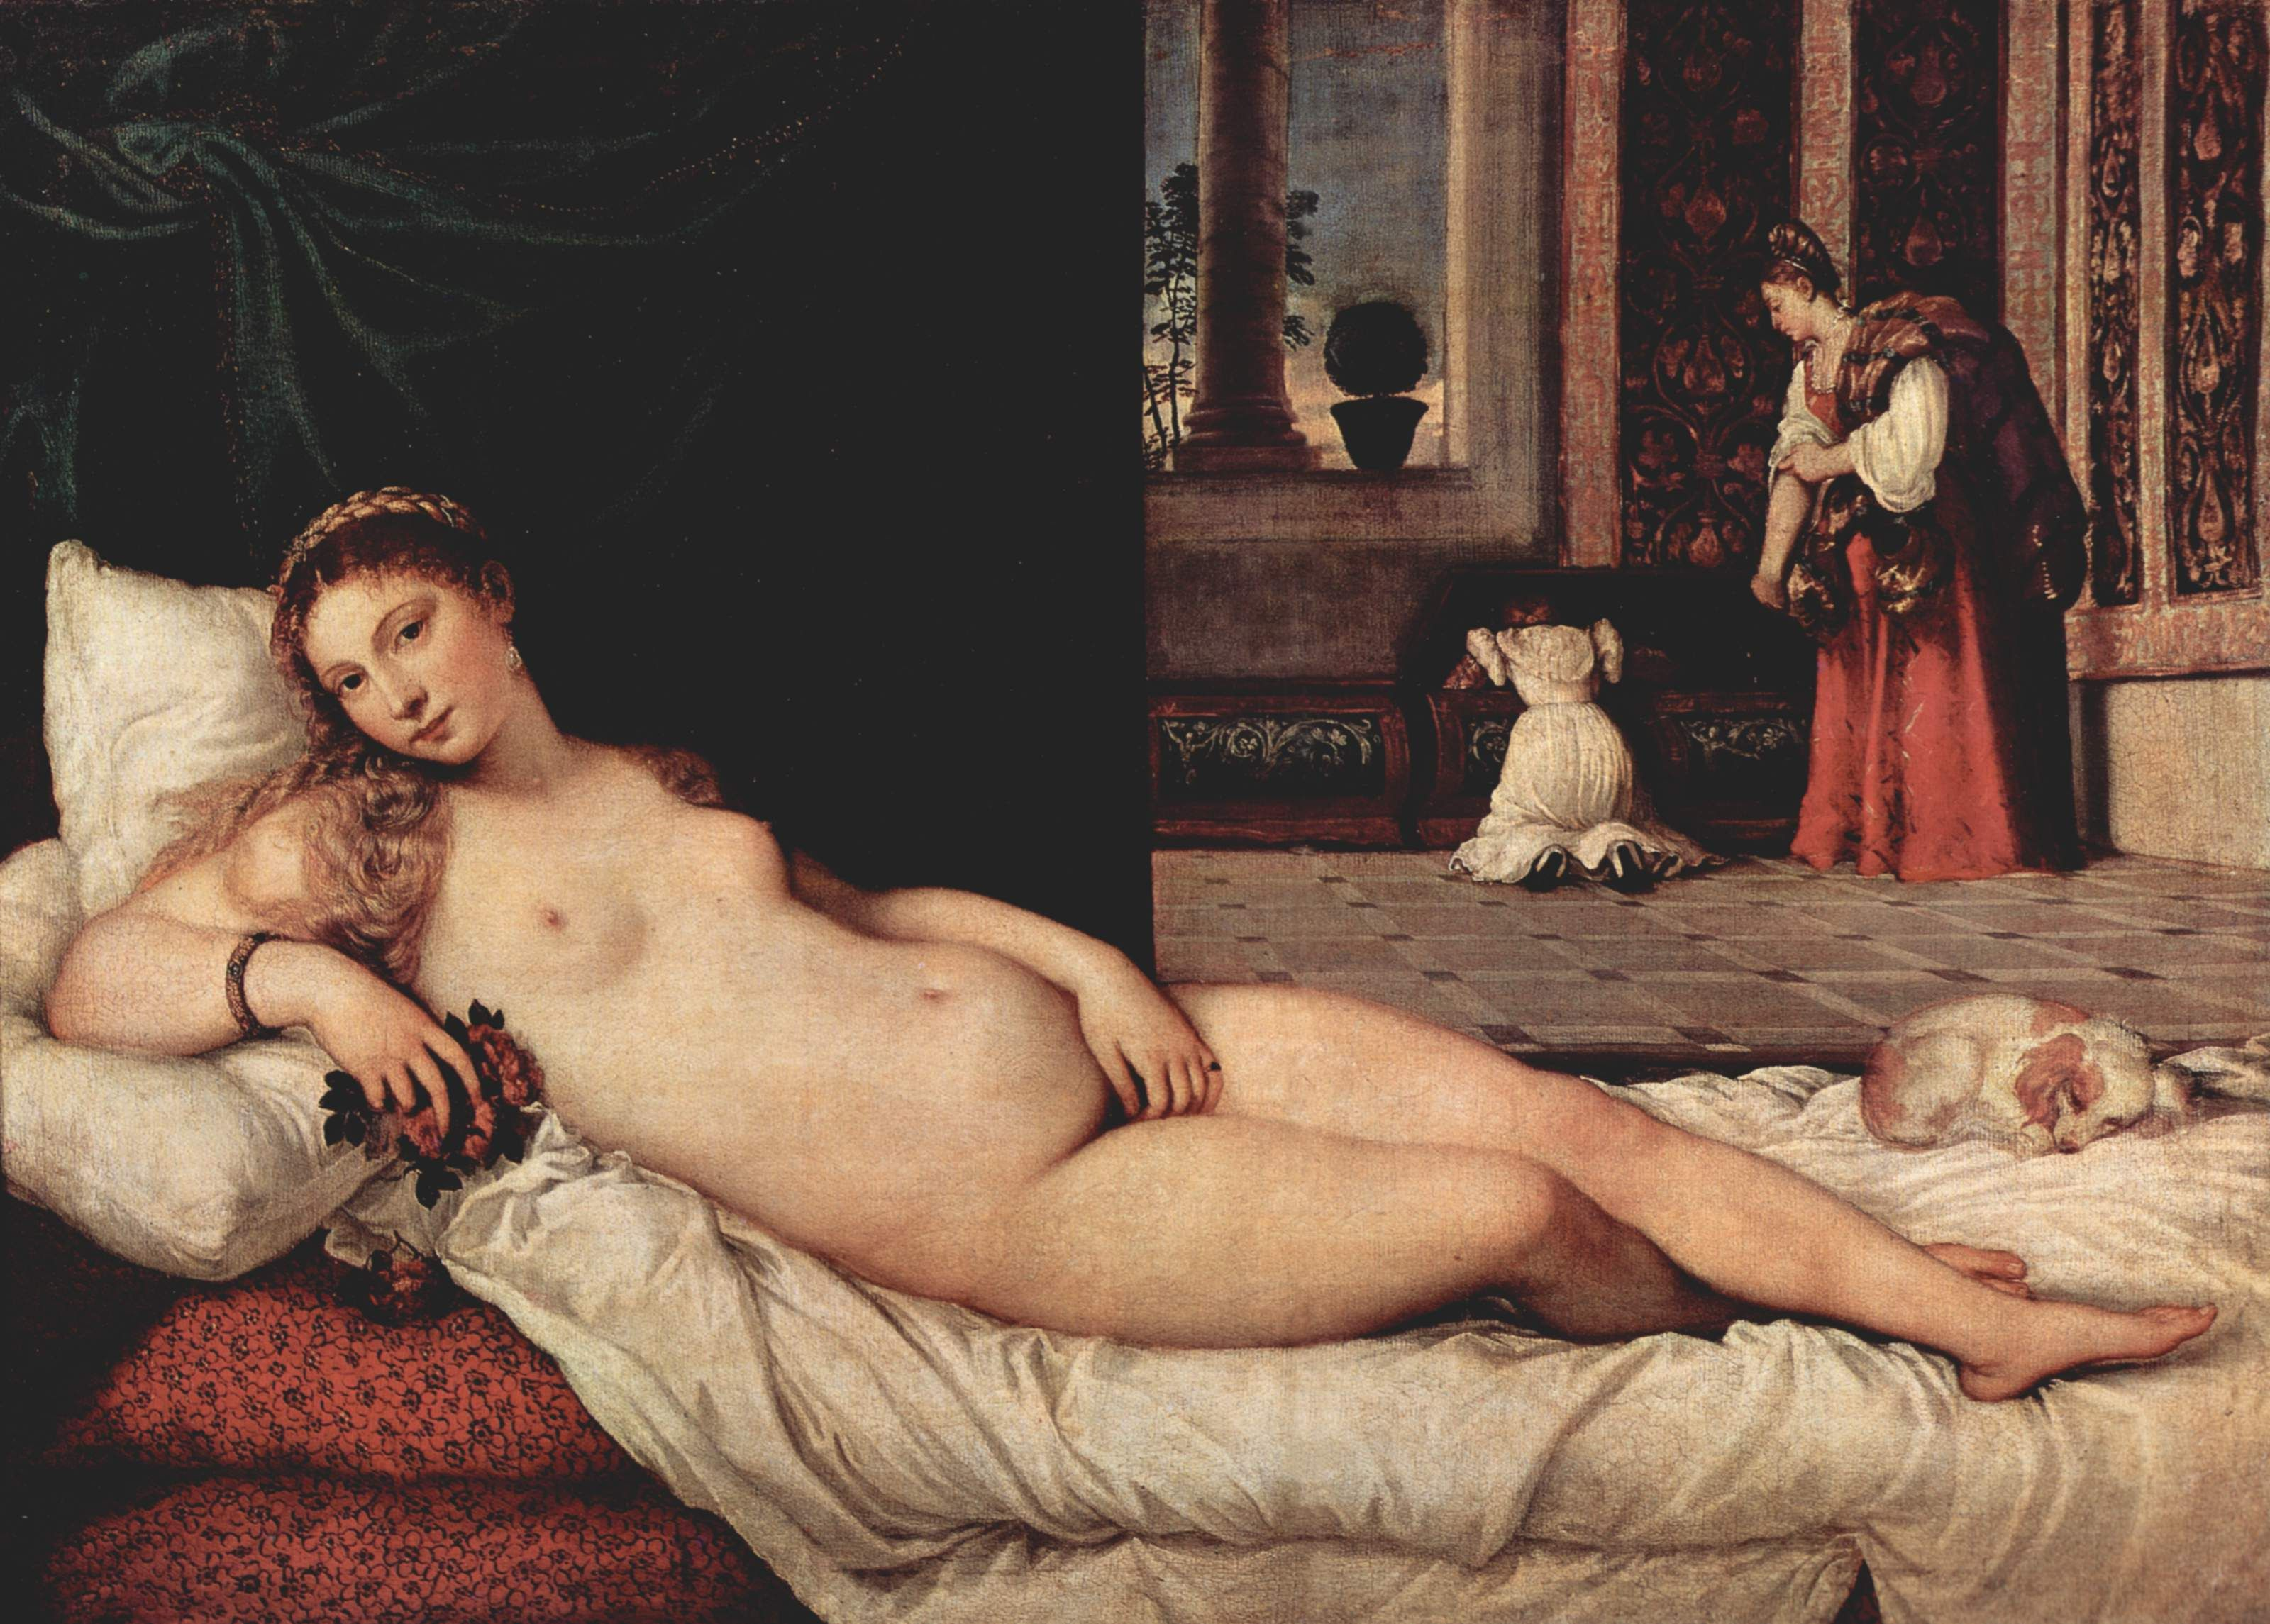 Renaissance painting three women nude all? not